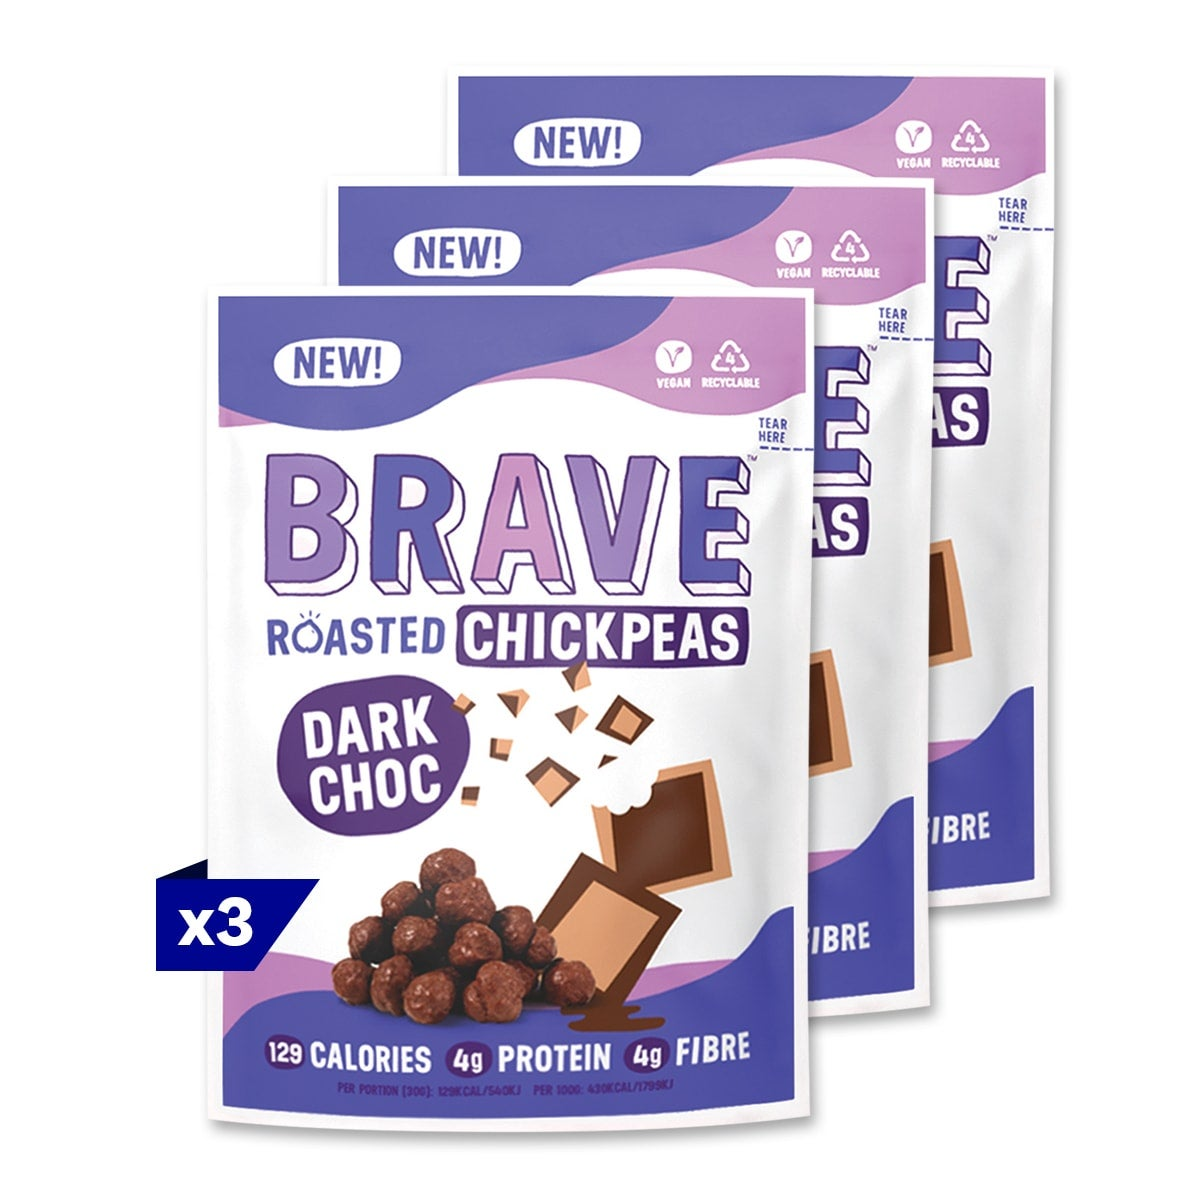 3 packs, Brave Dark Chocolate Roasted Chickpeas, 30g, roasted then coated in chocoloate, full of protein and fibre, 5 SmartPoints per bag, gluten free, suitable for vegans